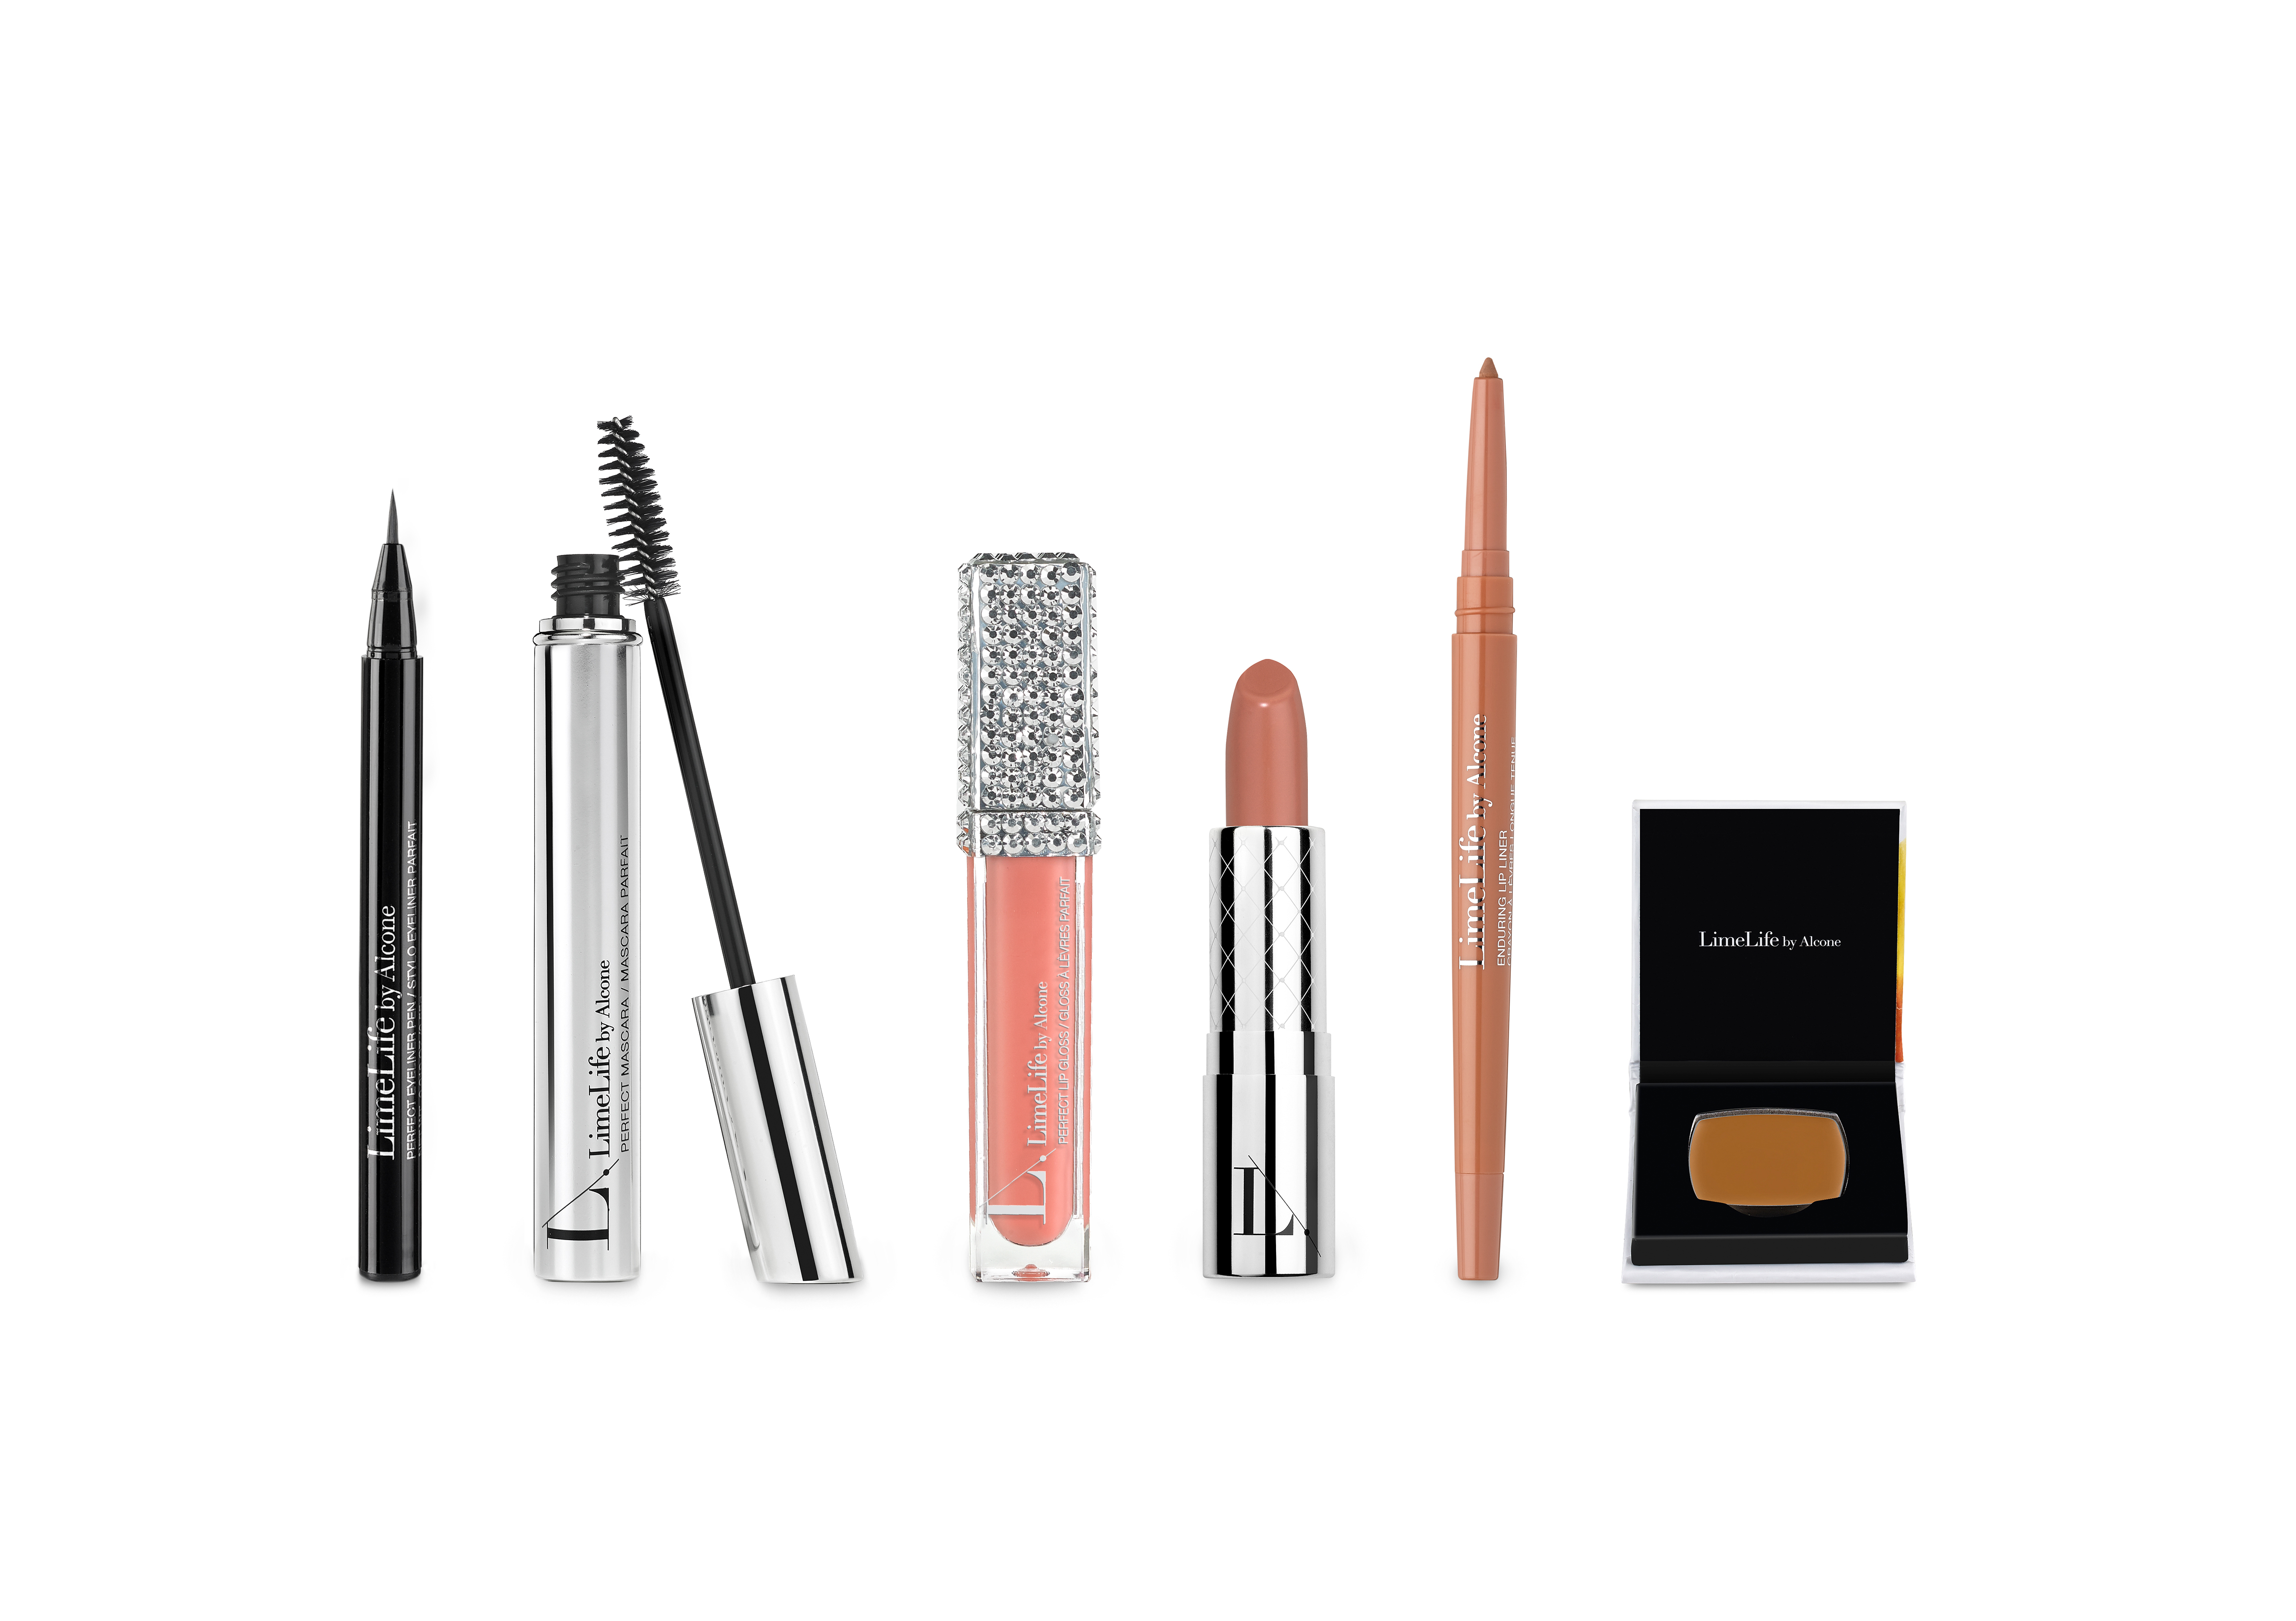 LimeLife by Alcone Makeup Collection